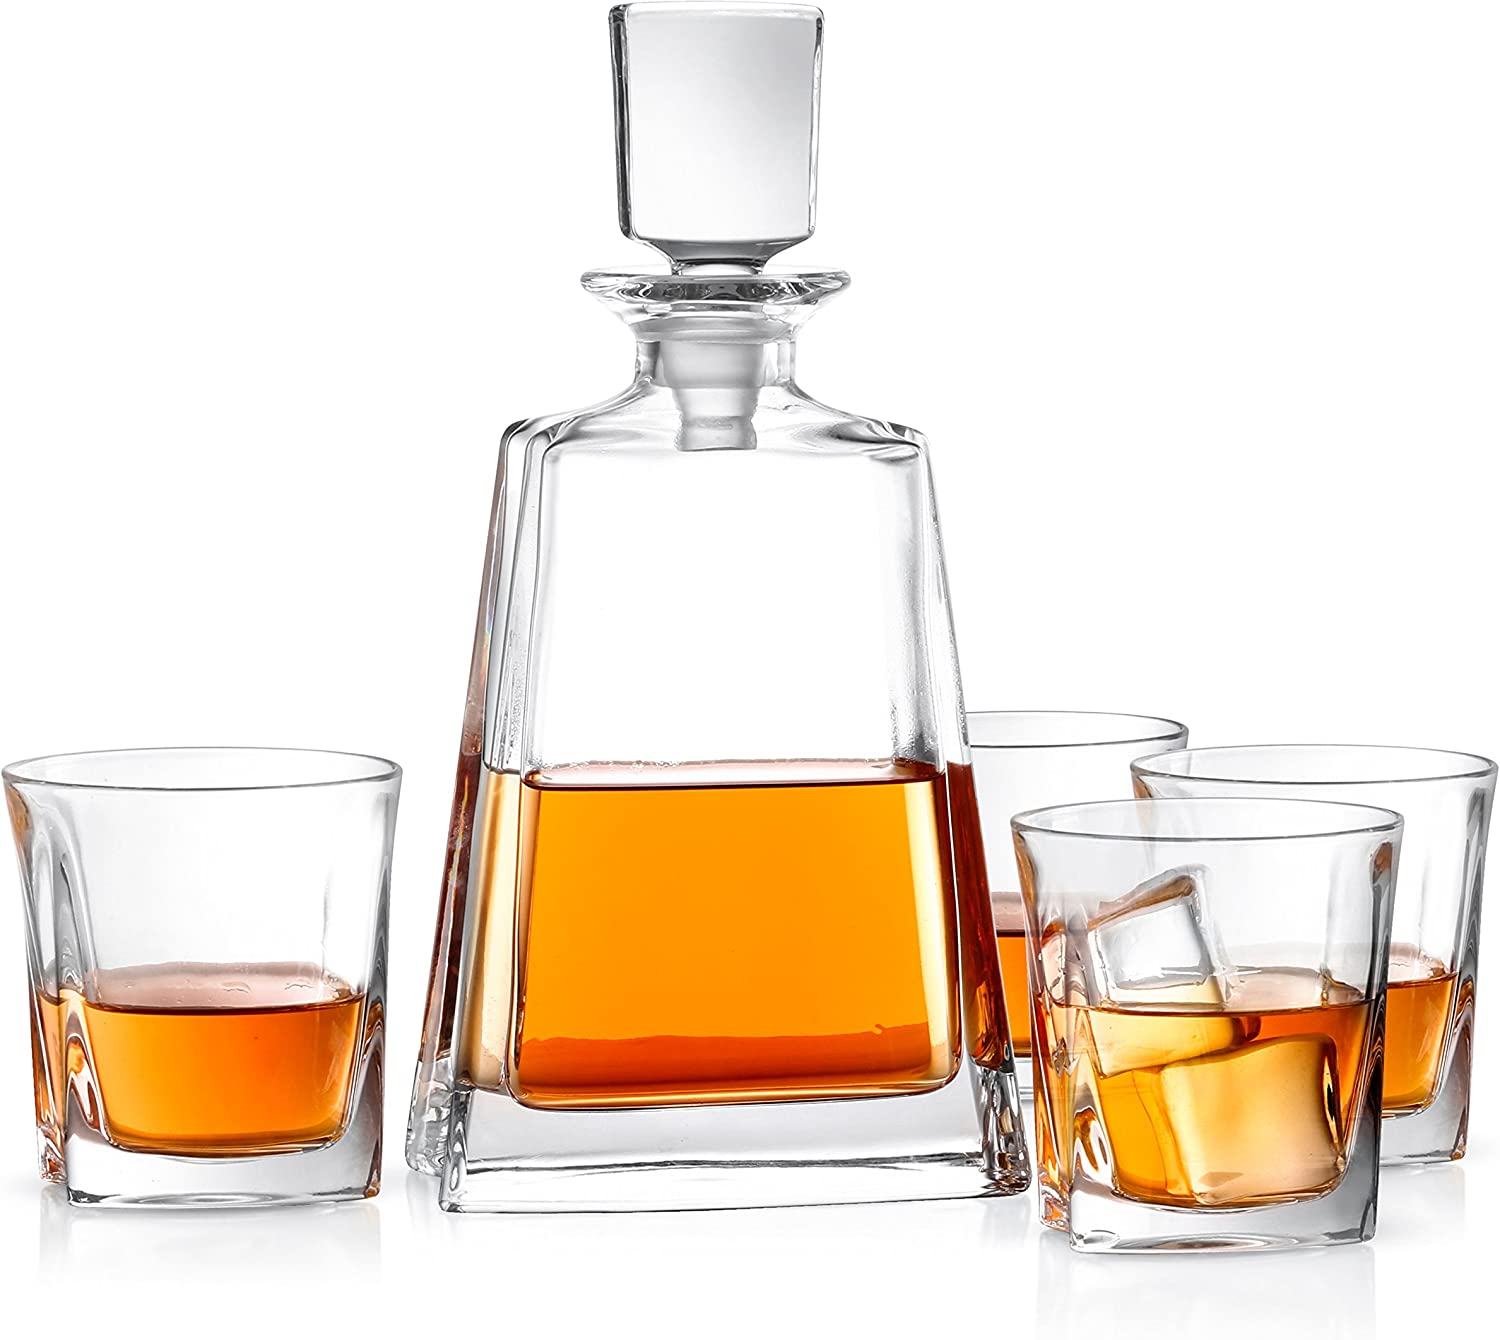 JoyJolt Luna 5 Piece Whiskey Decanter And Glass Set, 100% Lead-Free Crystal Bar Set Prefer For Scotch, Liquor, Bourbon Comes with A Whisky Decanter Sets And 4 Old Fashioned Glasses.